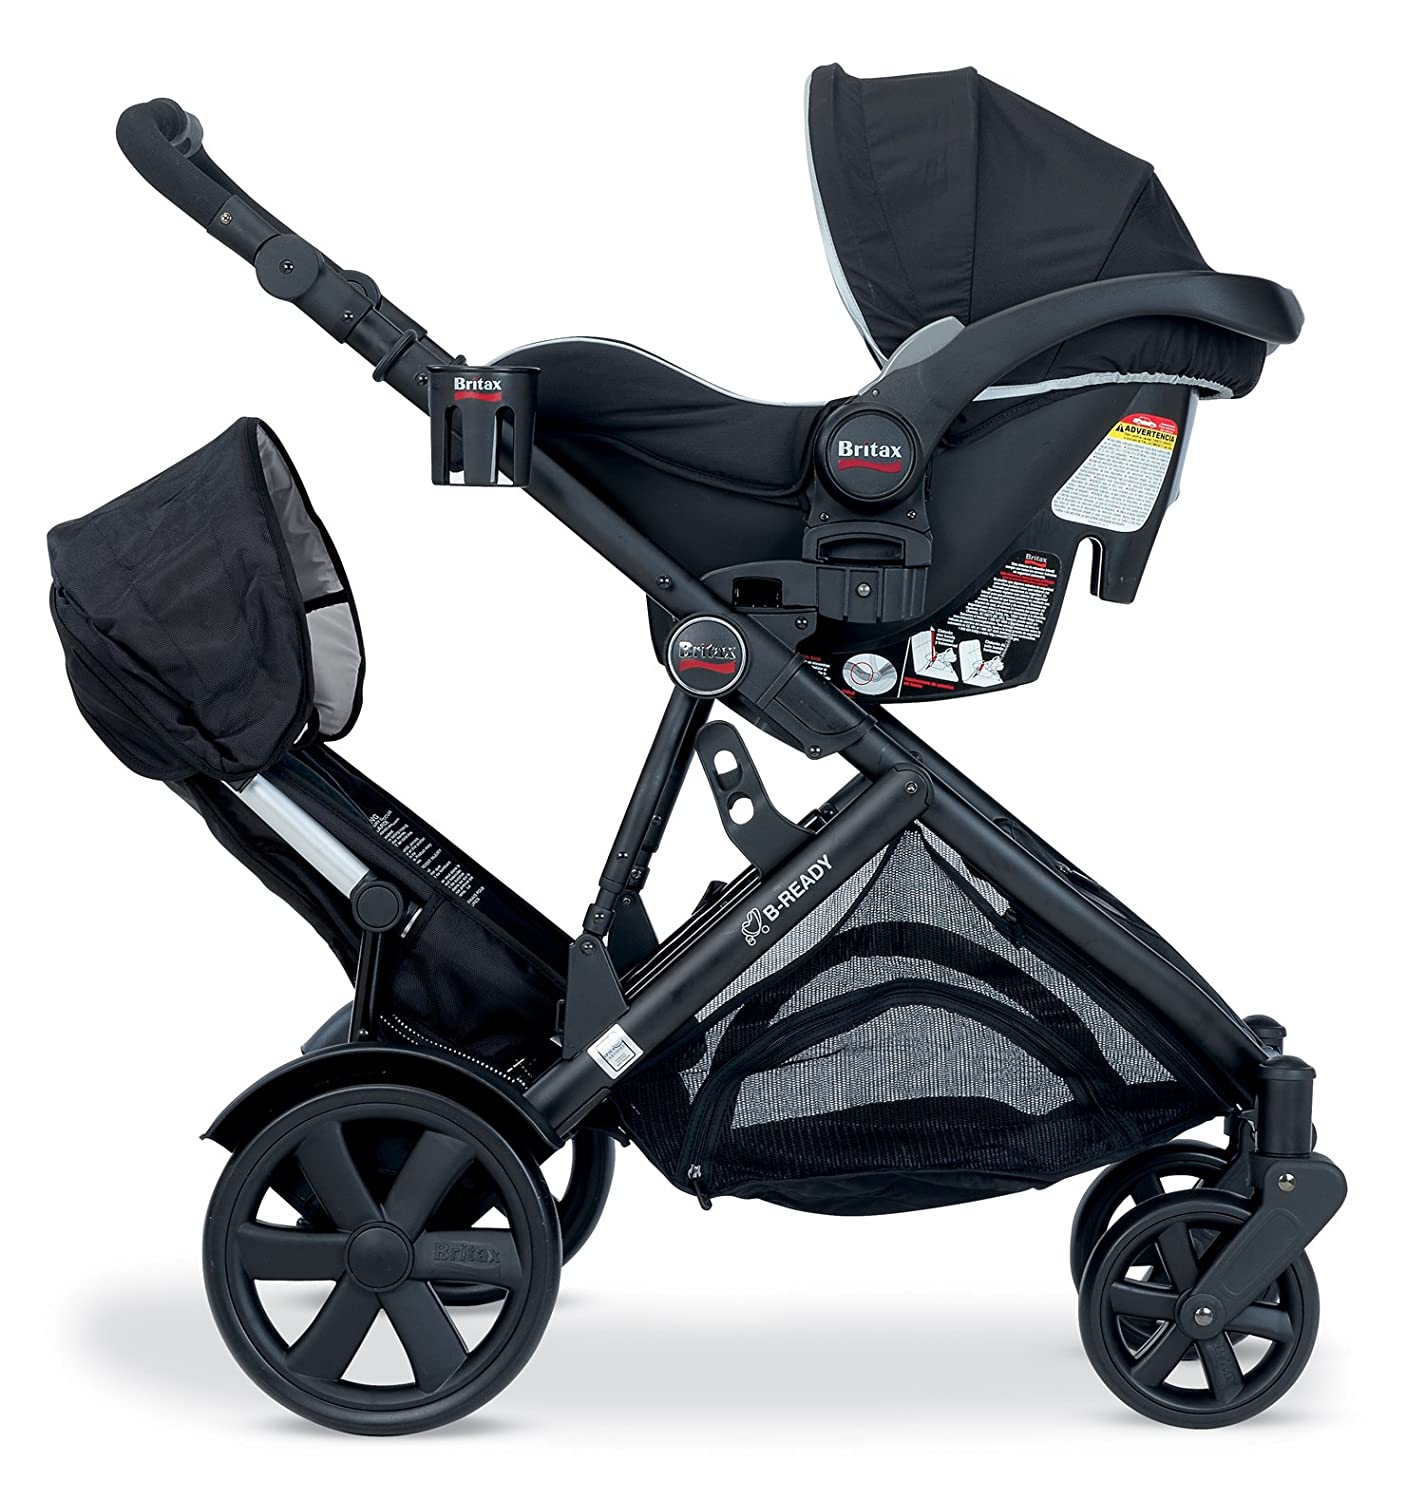 Amazon Britax Second Seat for B Ready Stroller Black Baby Stroller Accessories Baby